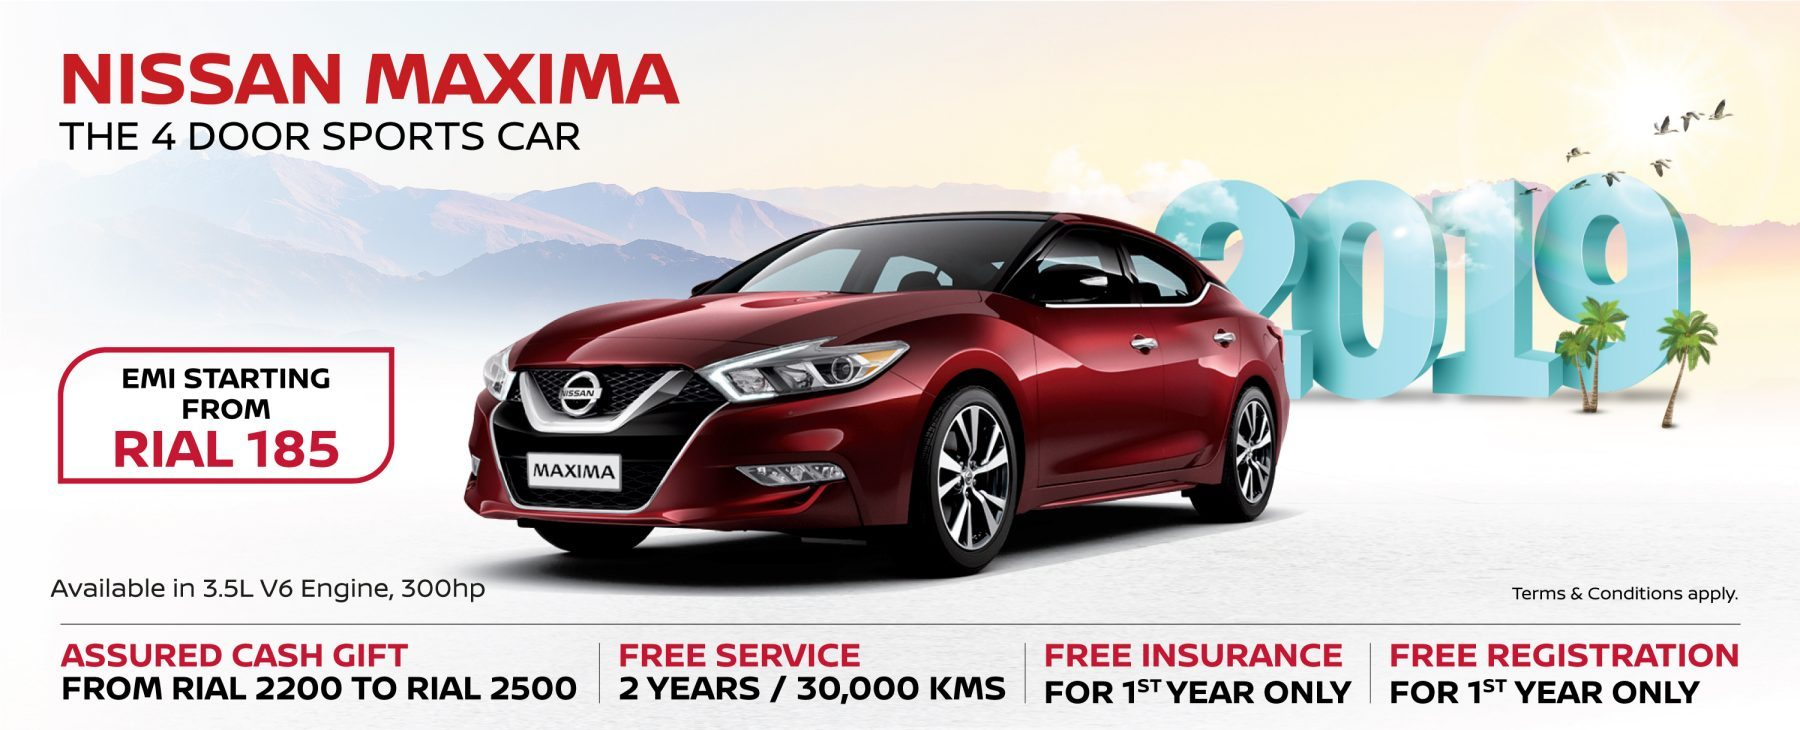 Nissan Maxima January Offer 2019